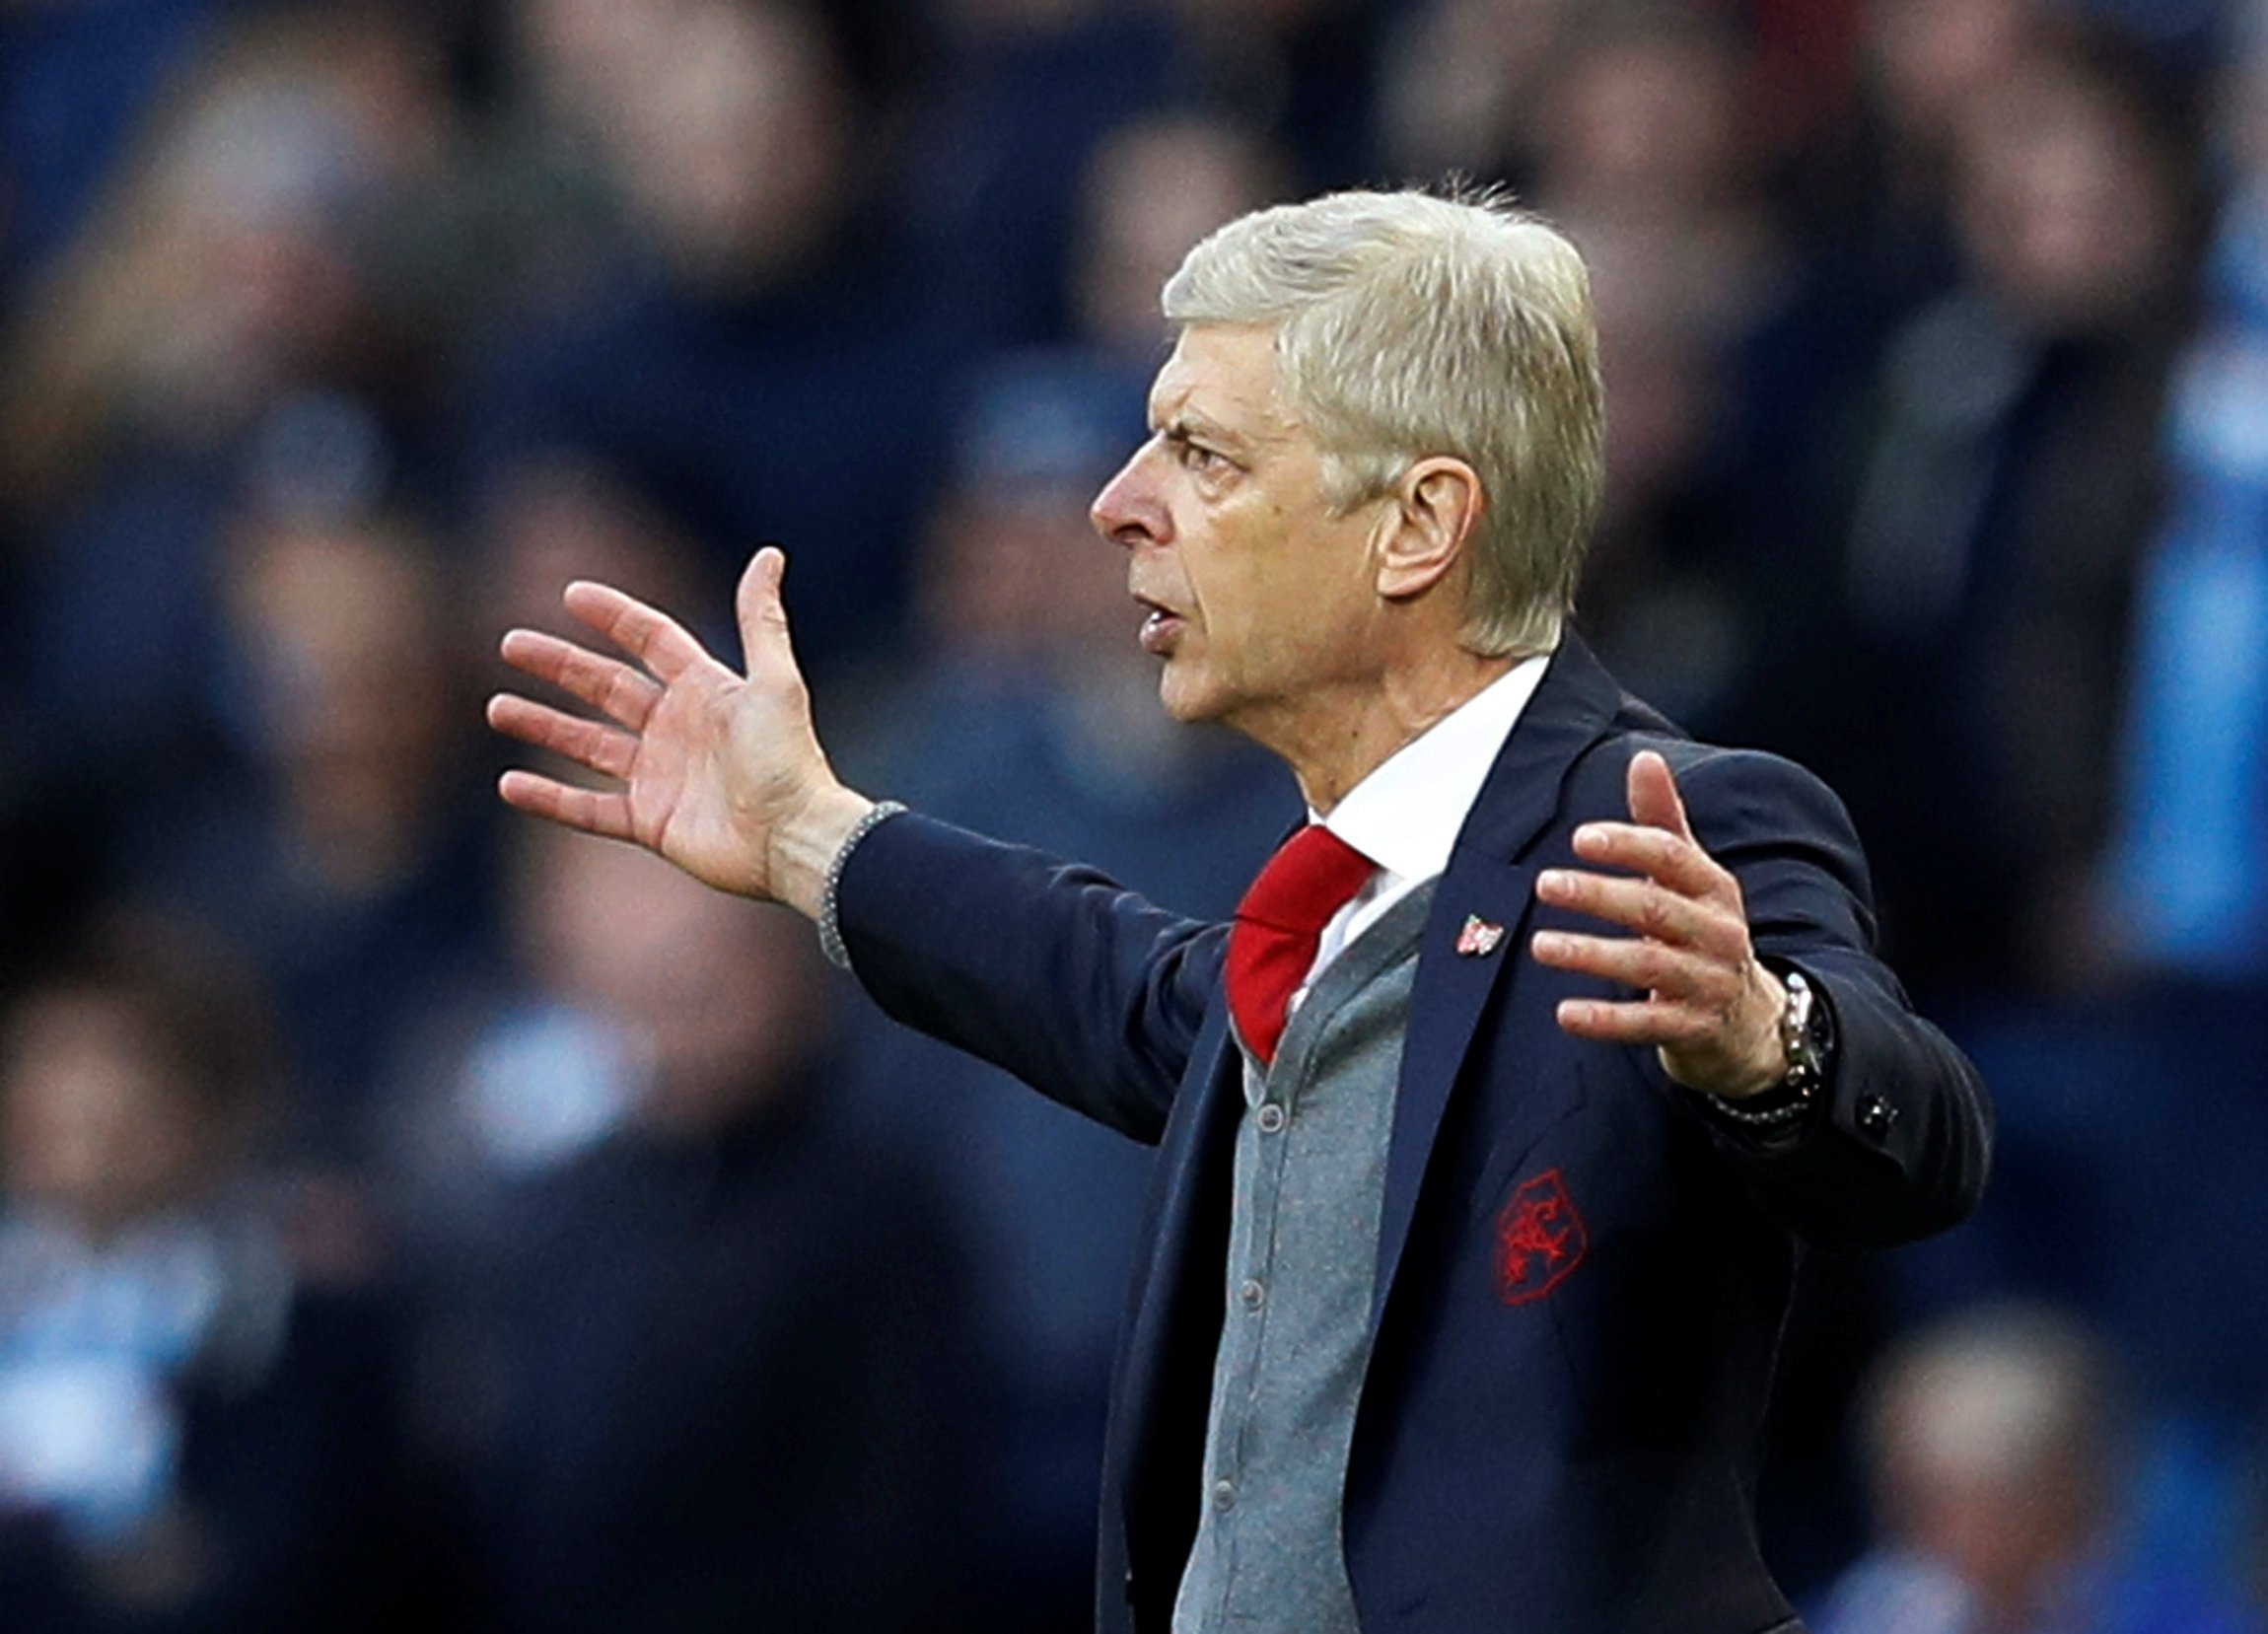 Arsene Wenger could face FA sanction after referee rant following Man City 3 Arsenal 1